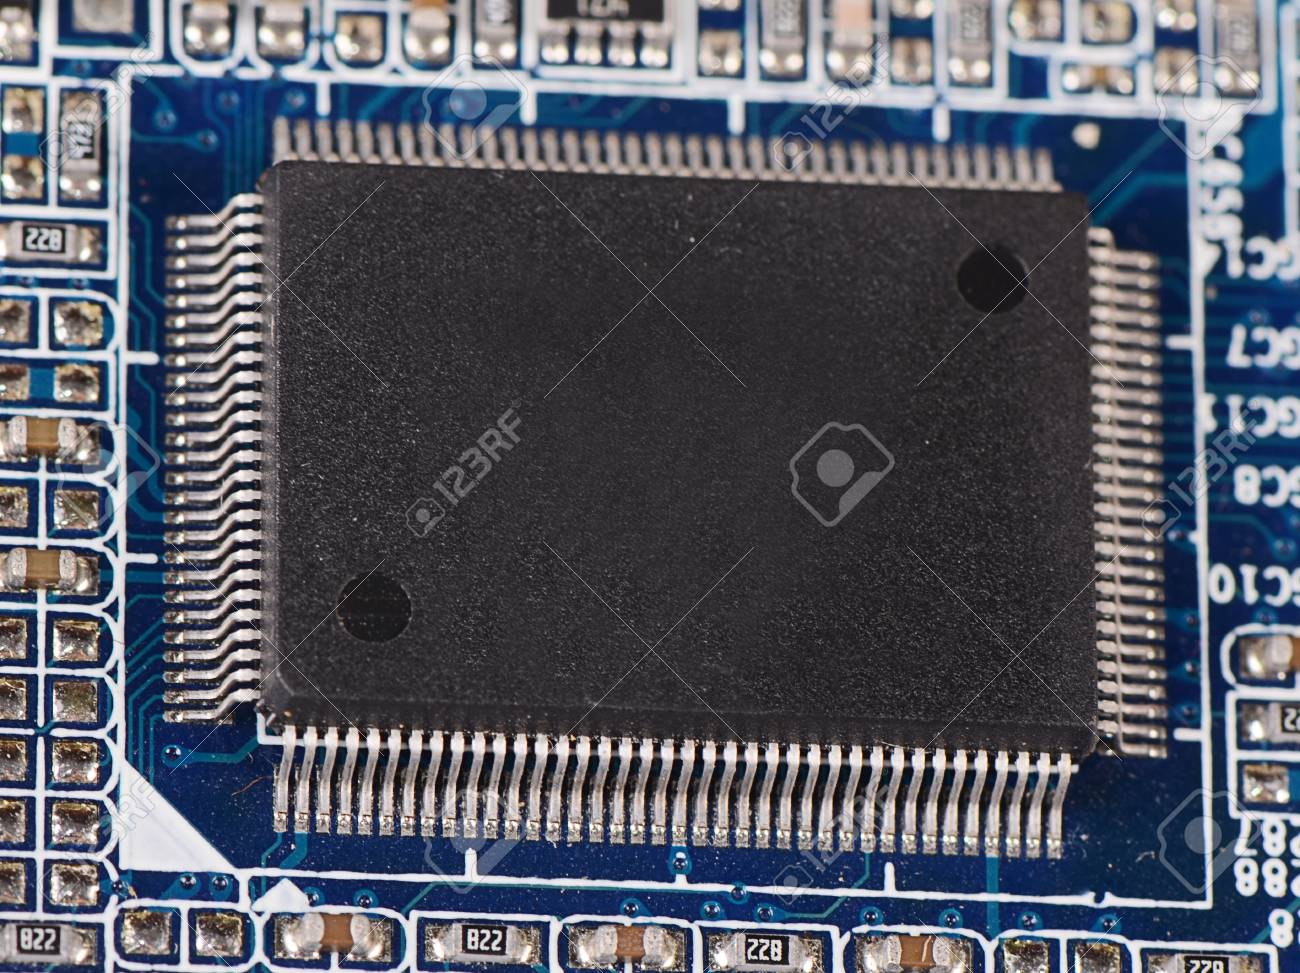 The details motherboard as a background  Macro